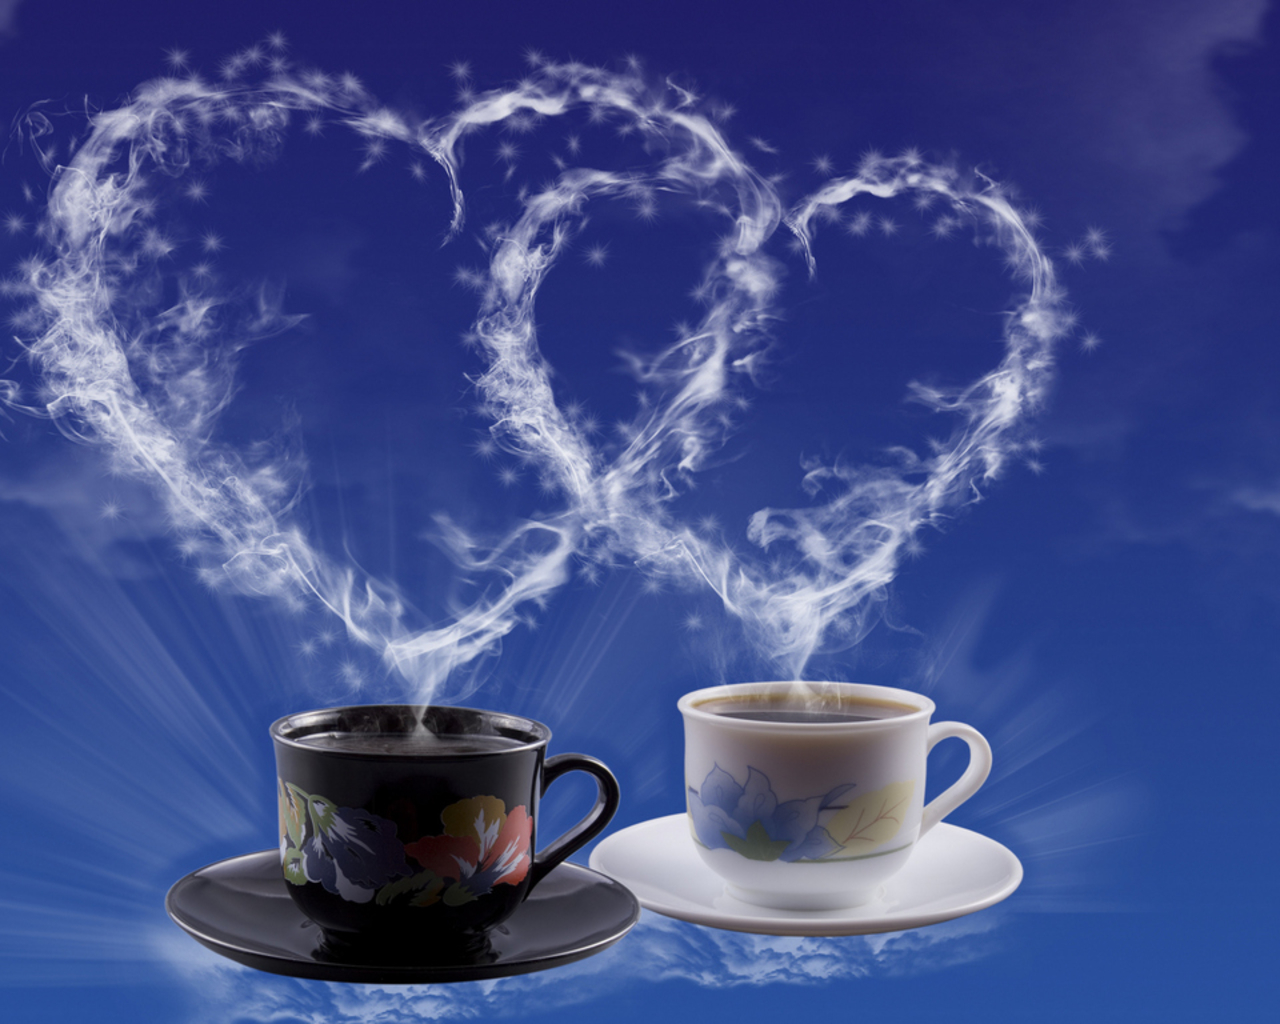 i LOVE coffee - Coffee Wallpaper (25055467) - Fanpop